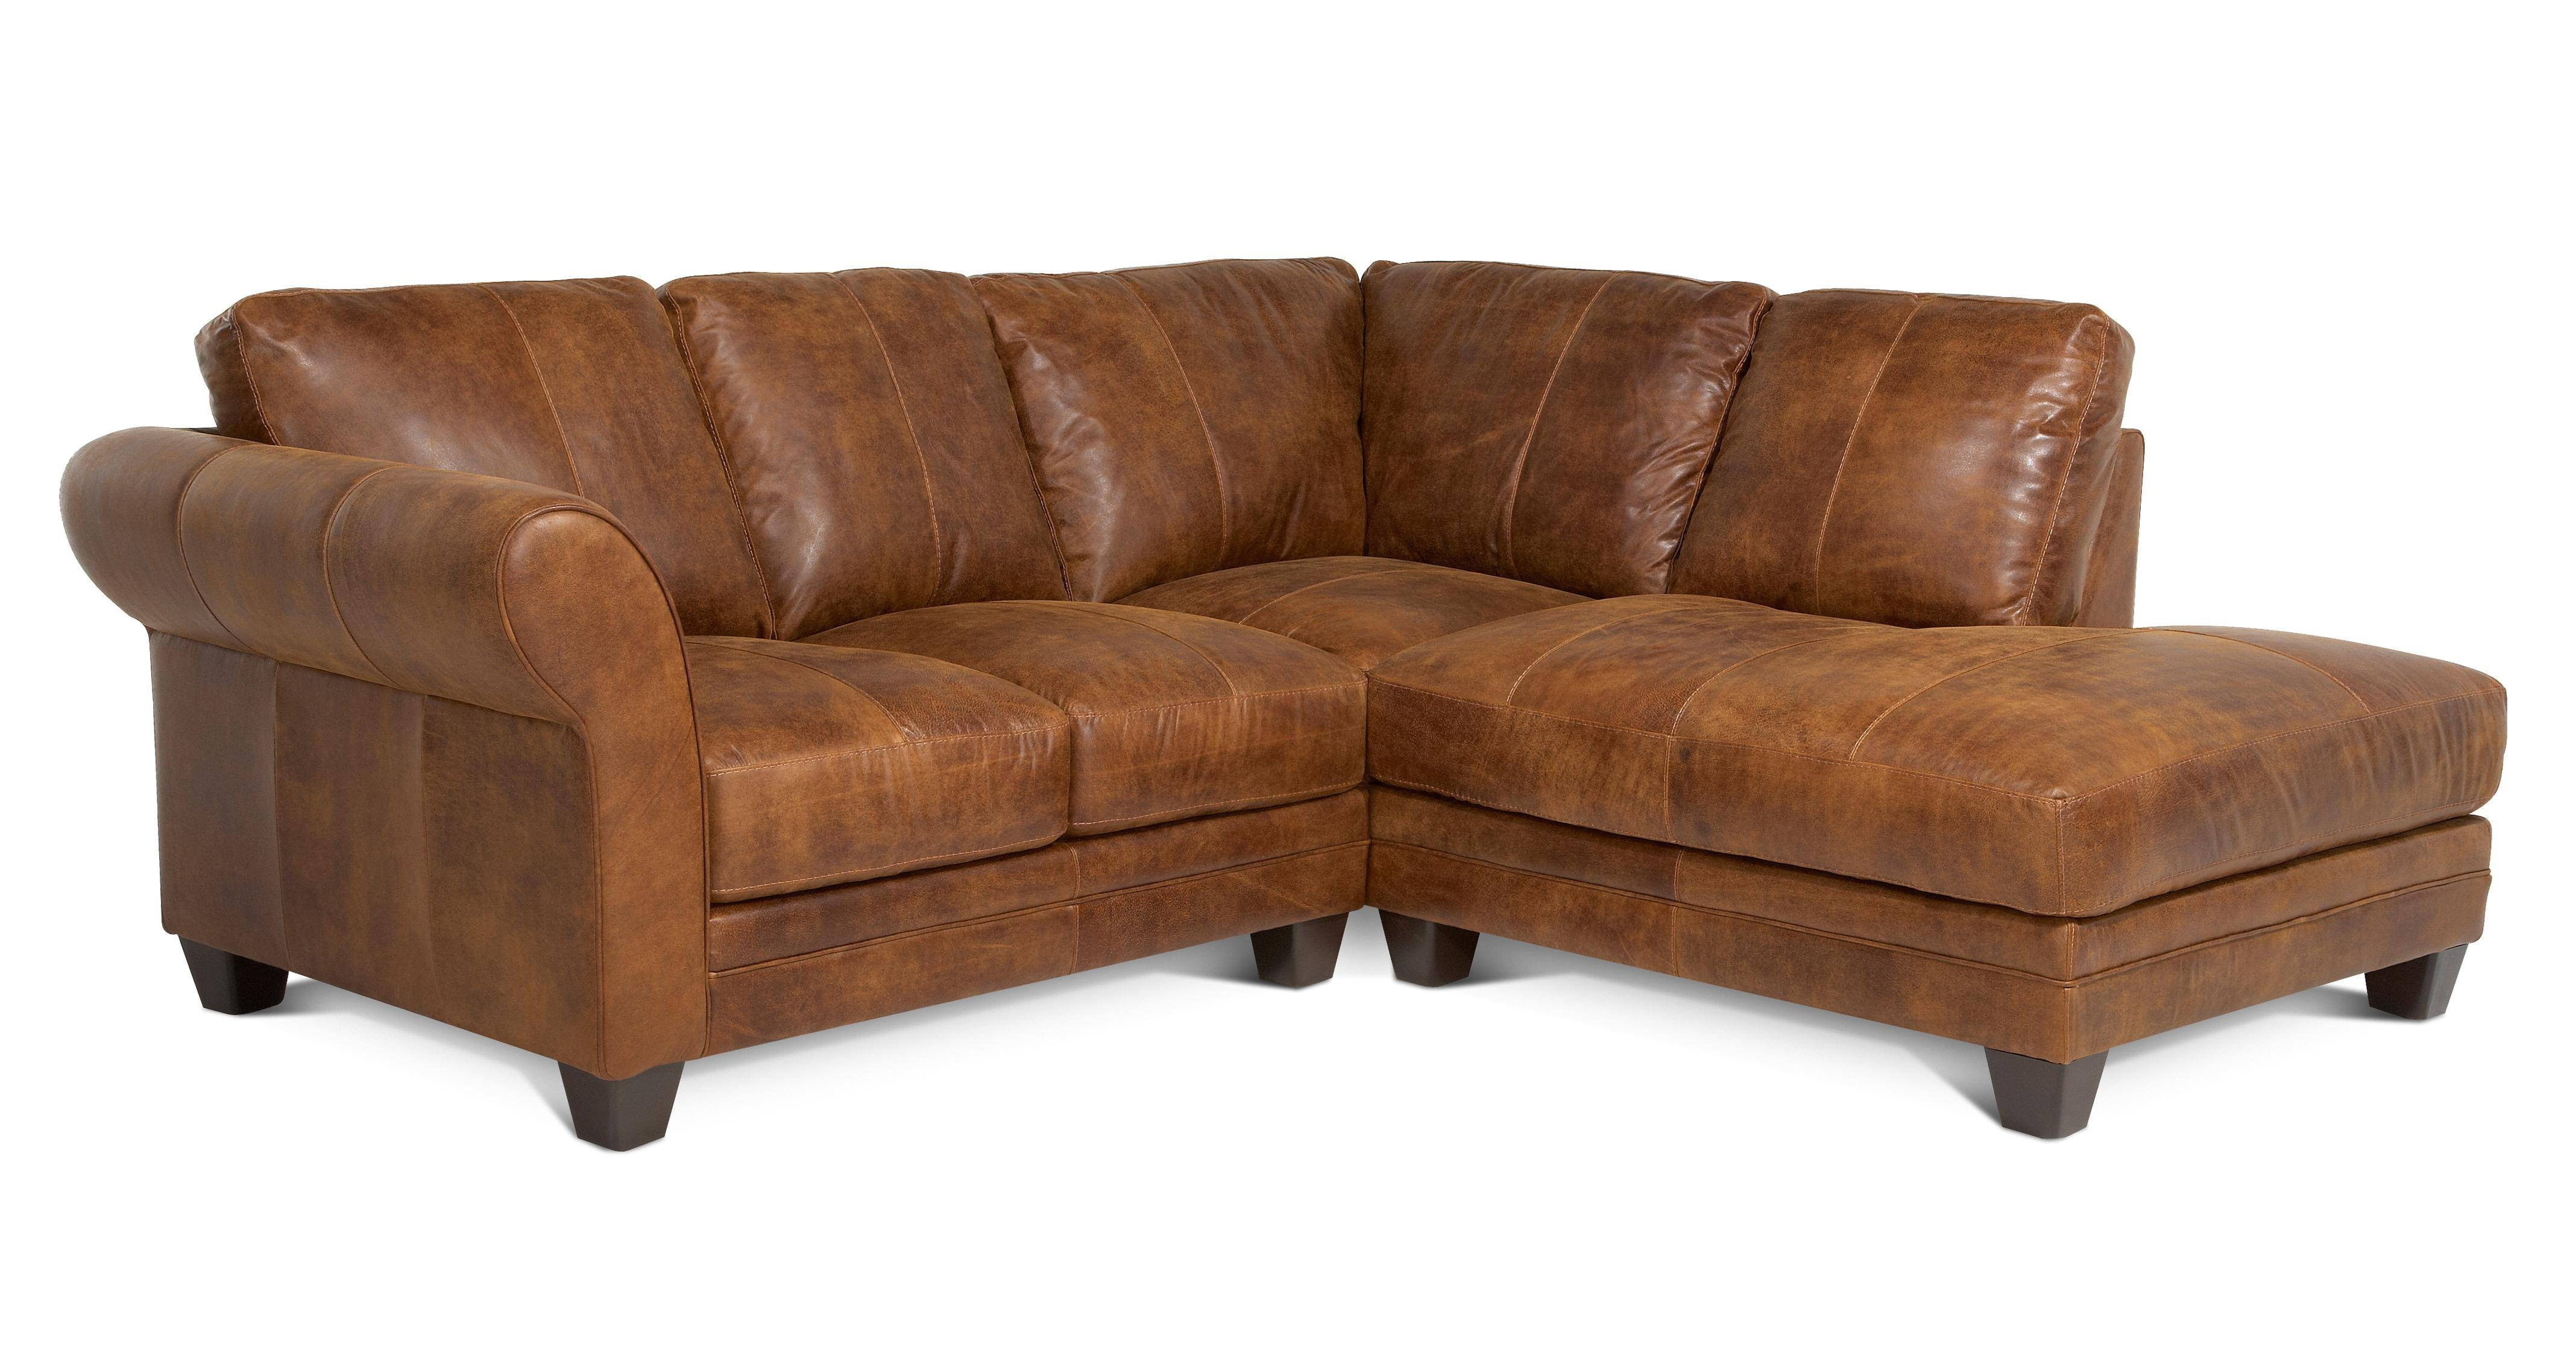 Small Corner Sofa Leather | Tehranmix Decoration Throughout Small Brown Leather Corner Sofas (View 19 of 30)